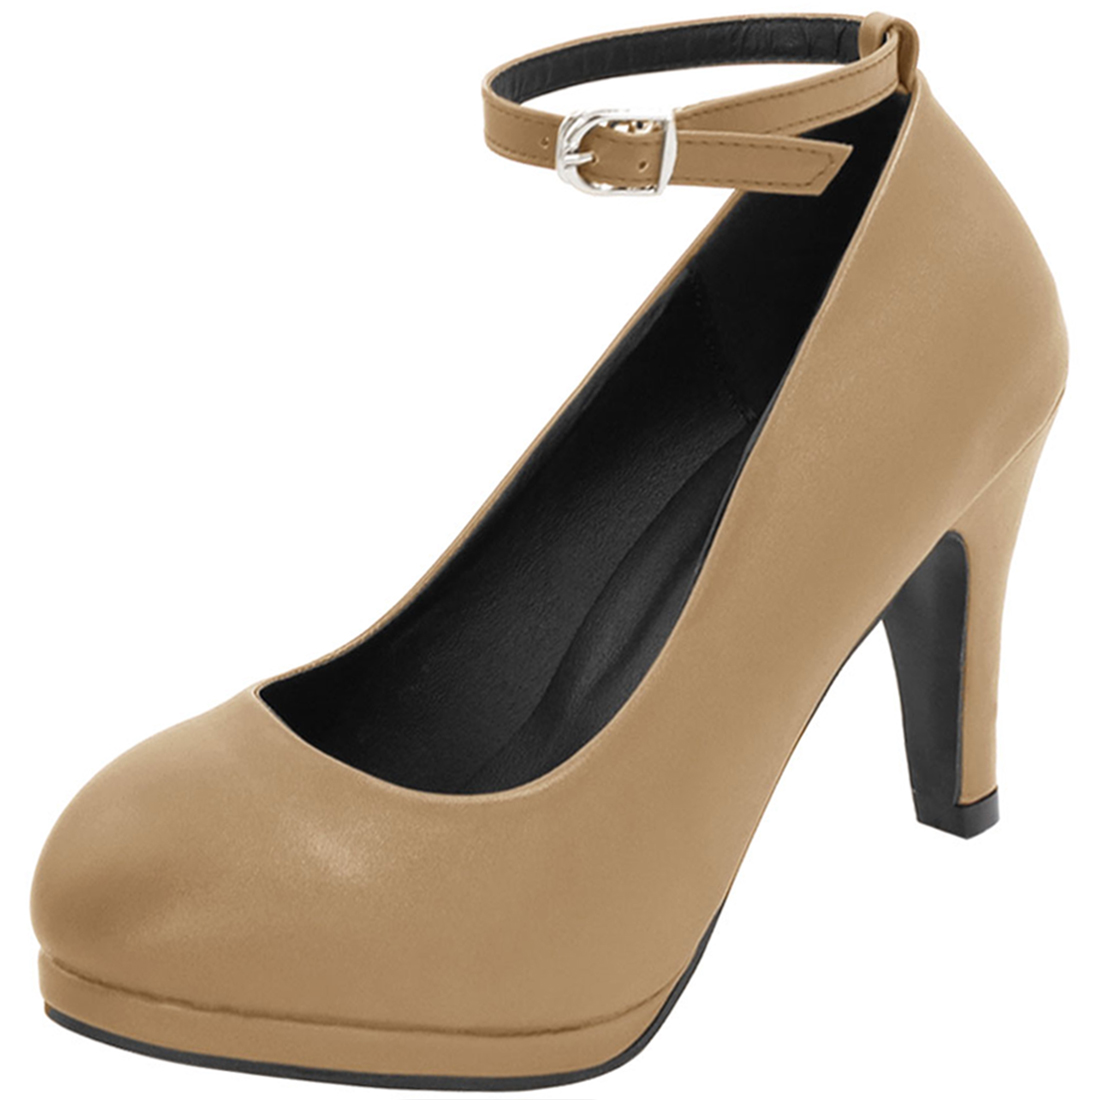 Woman Rounded Toe Mid Heel Length Ankle Strap Pumps Dark Beige US 7.5